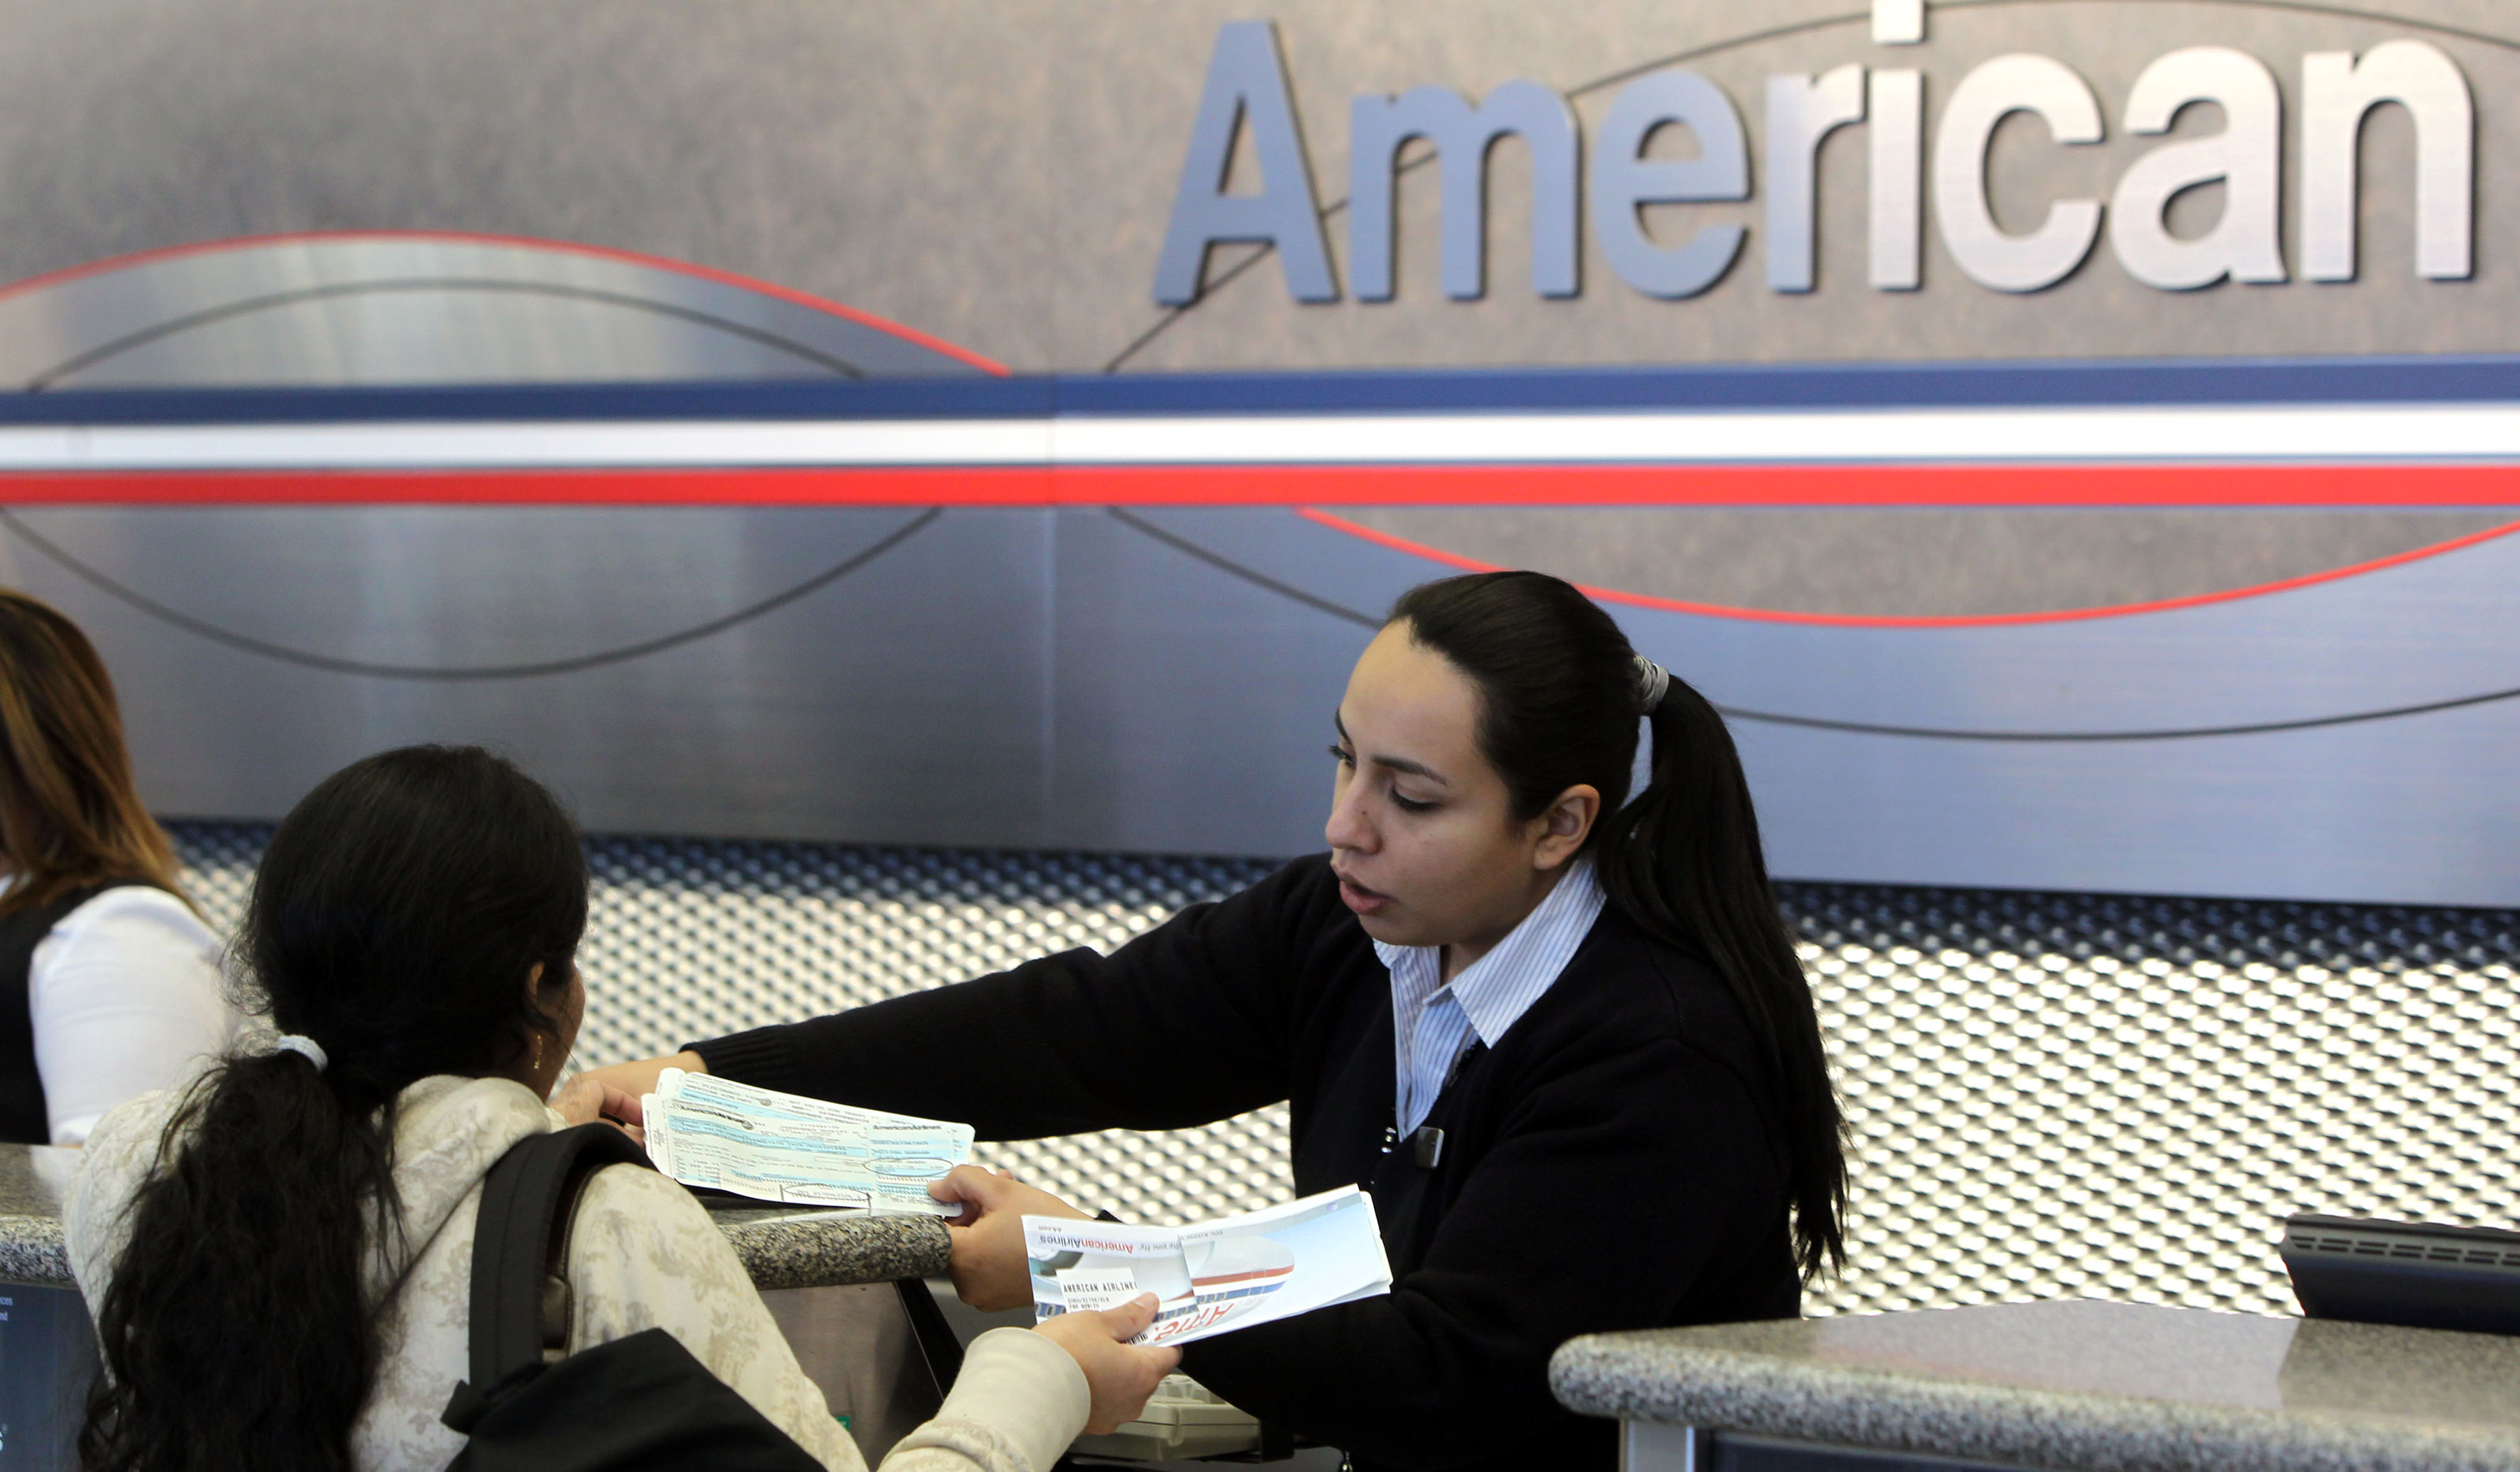 A ticket agent at the American Airlines terminal at O'Hare International Airport in Chicago, Illinois, discusses a ticket with a customer.